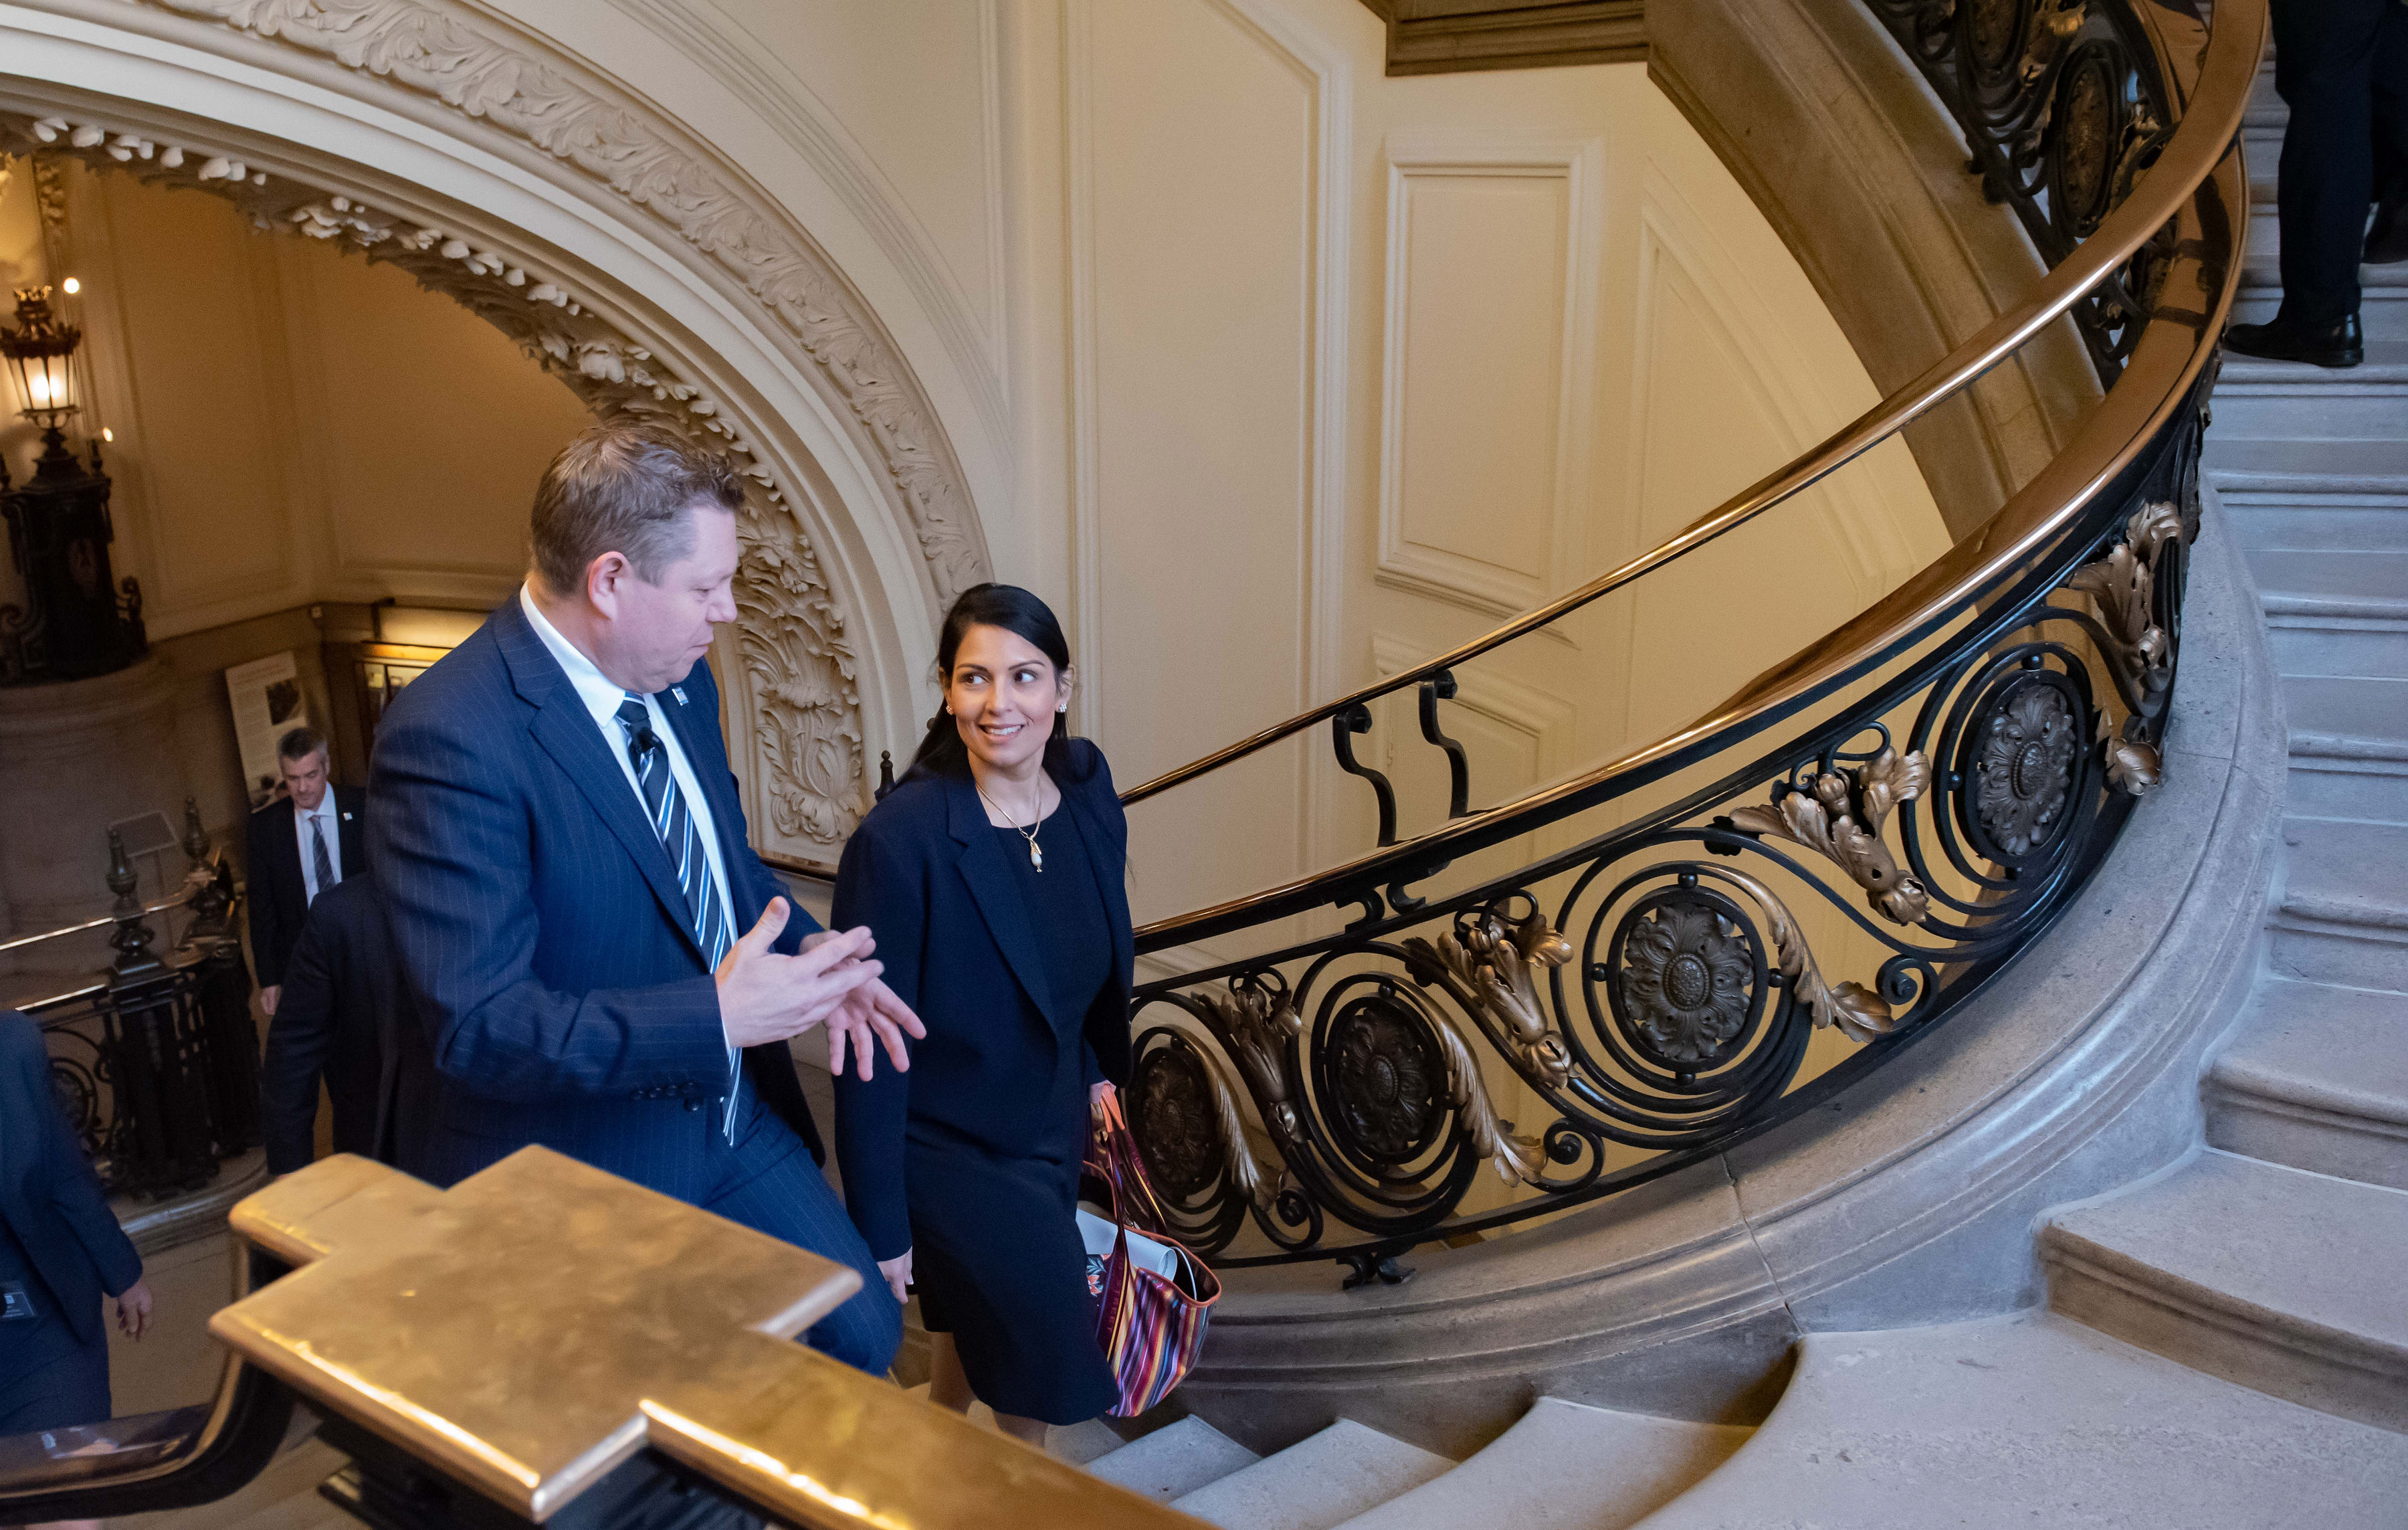 Priti Patel, pictured here with John Apter, was appointed Home Secretary in August